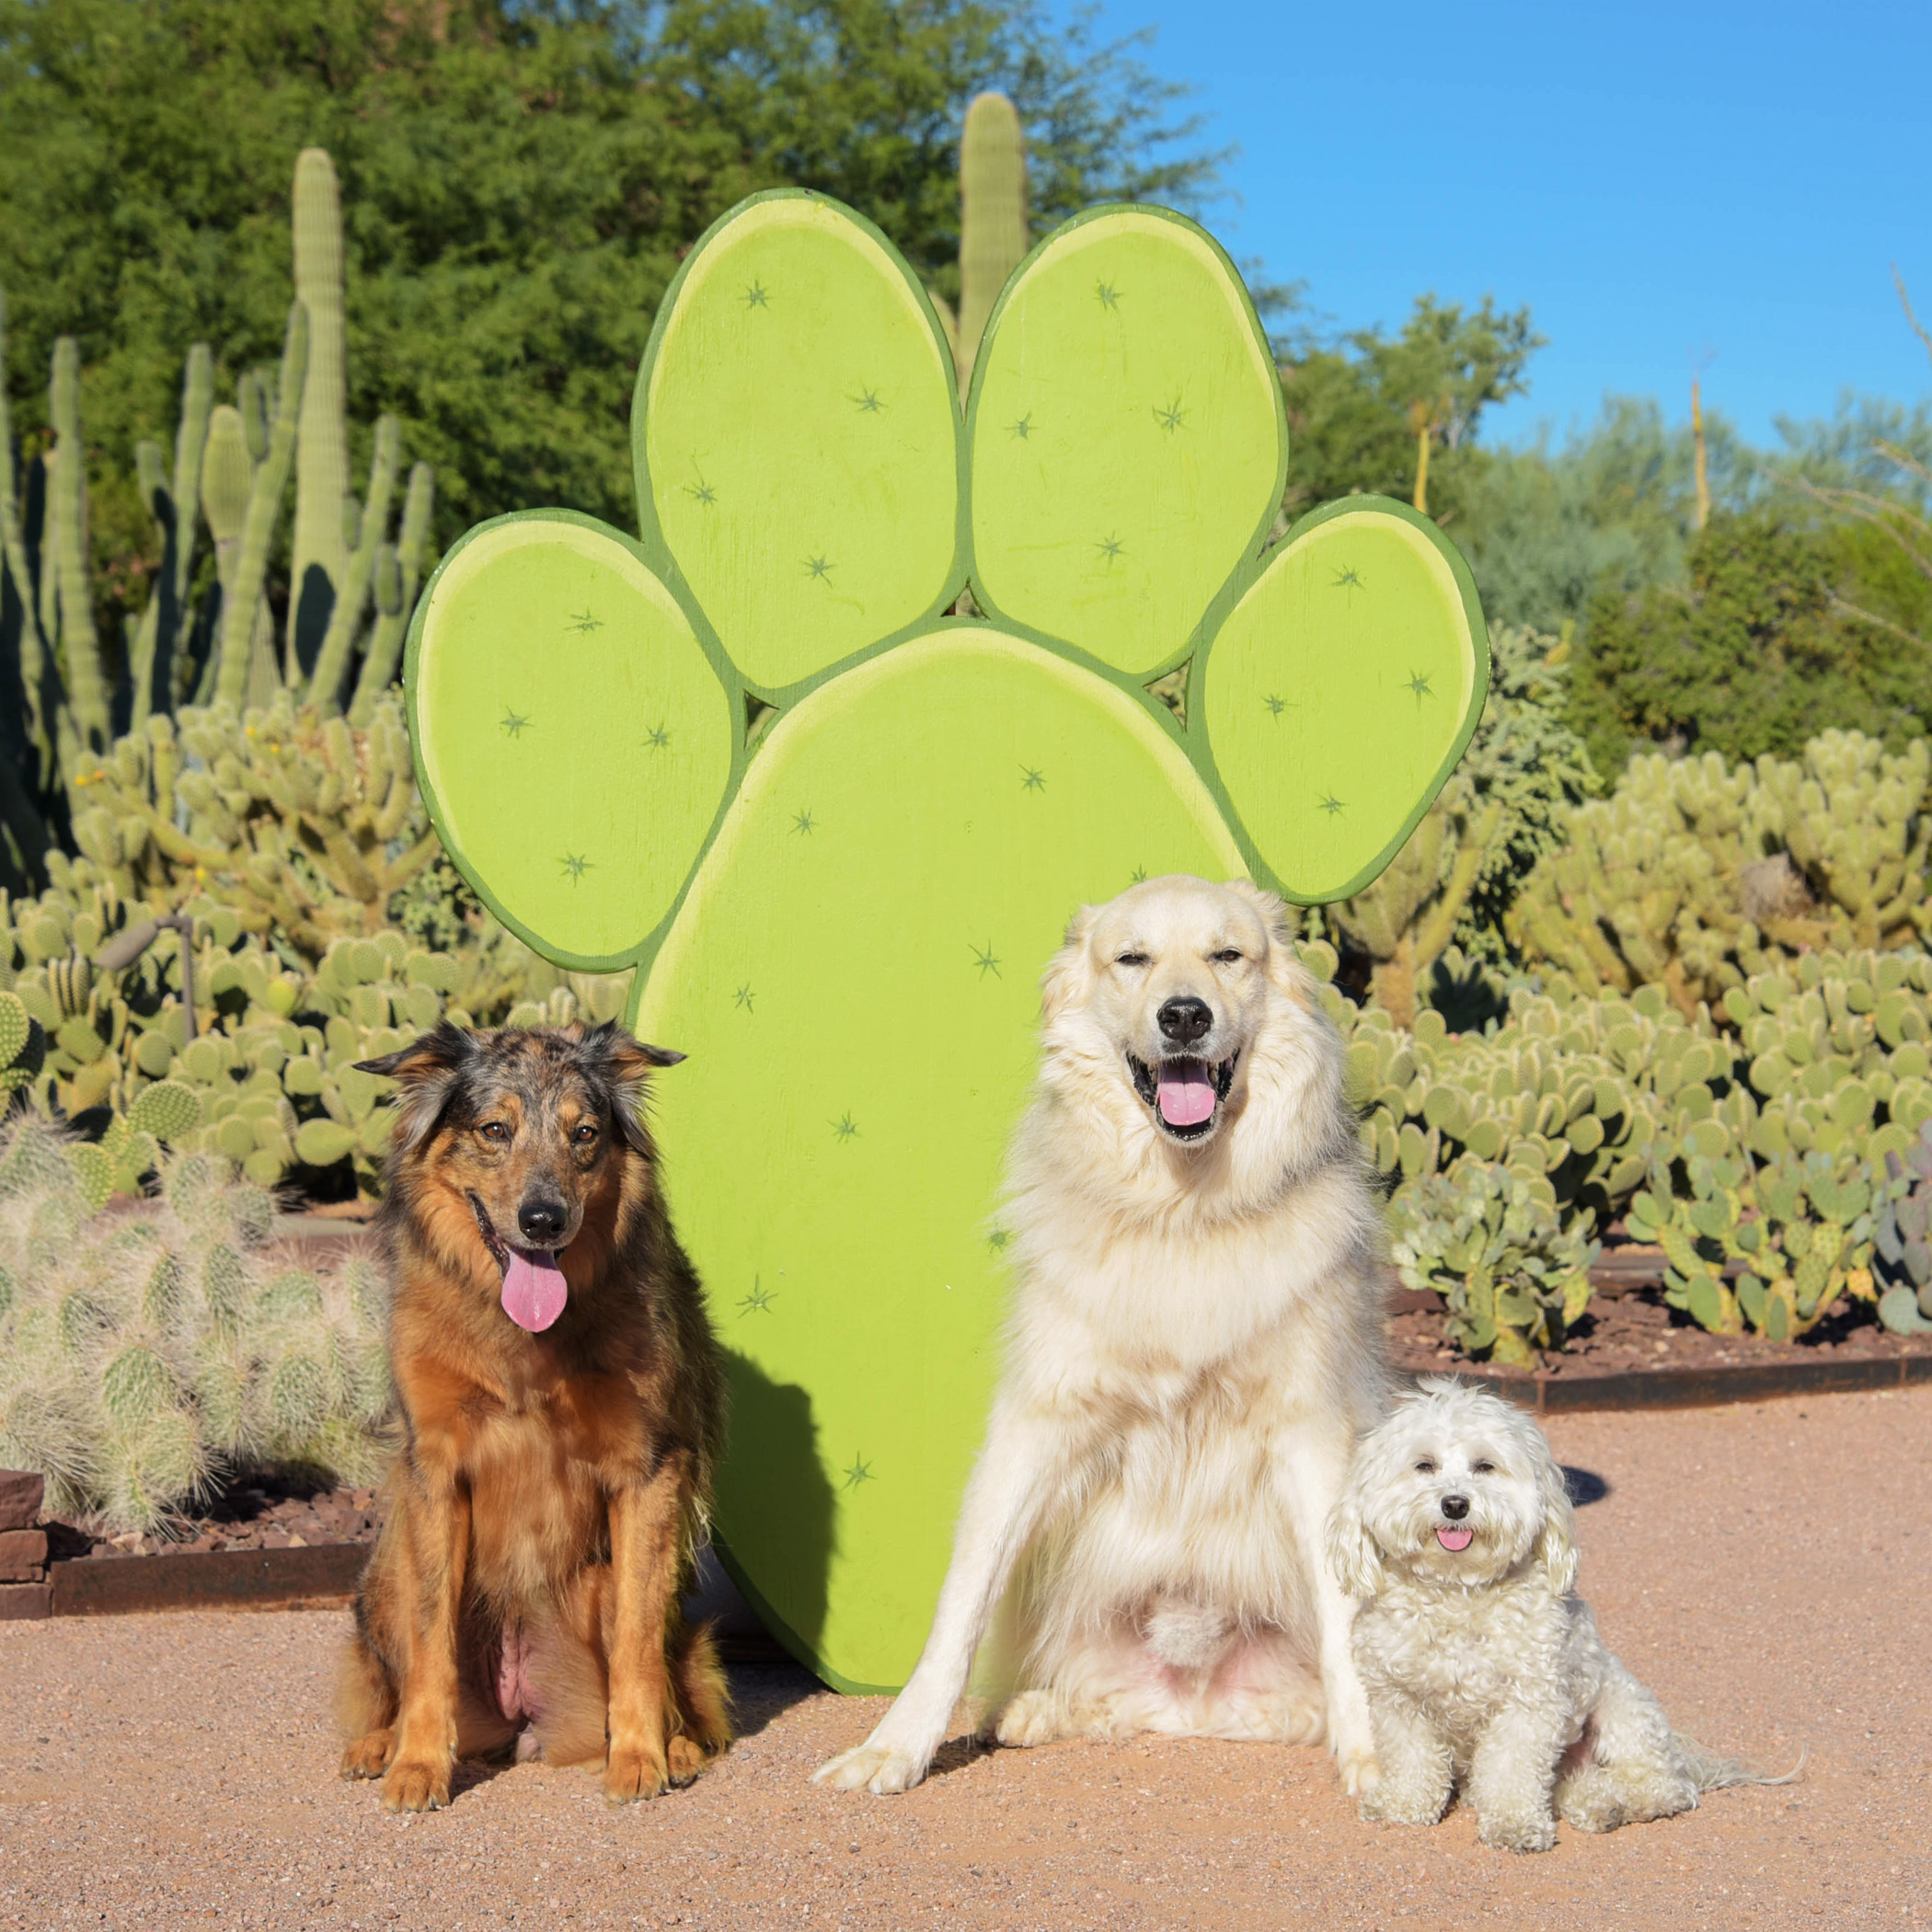 Of course, Bruiser, insisted on posing with the big dogs! He thinks he looks just like them!